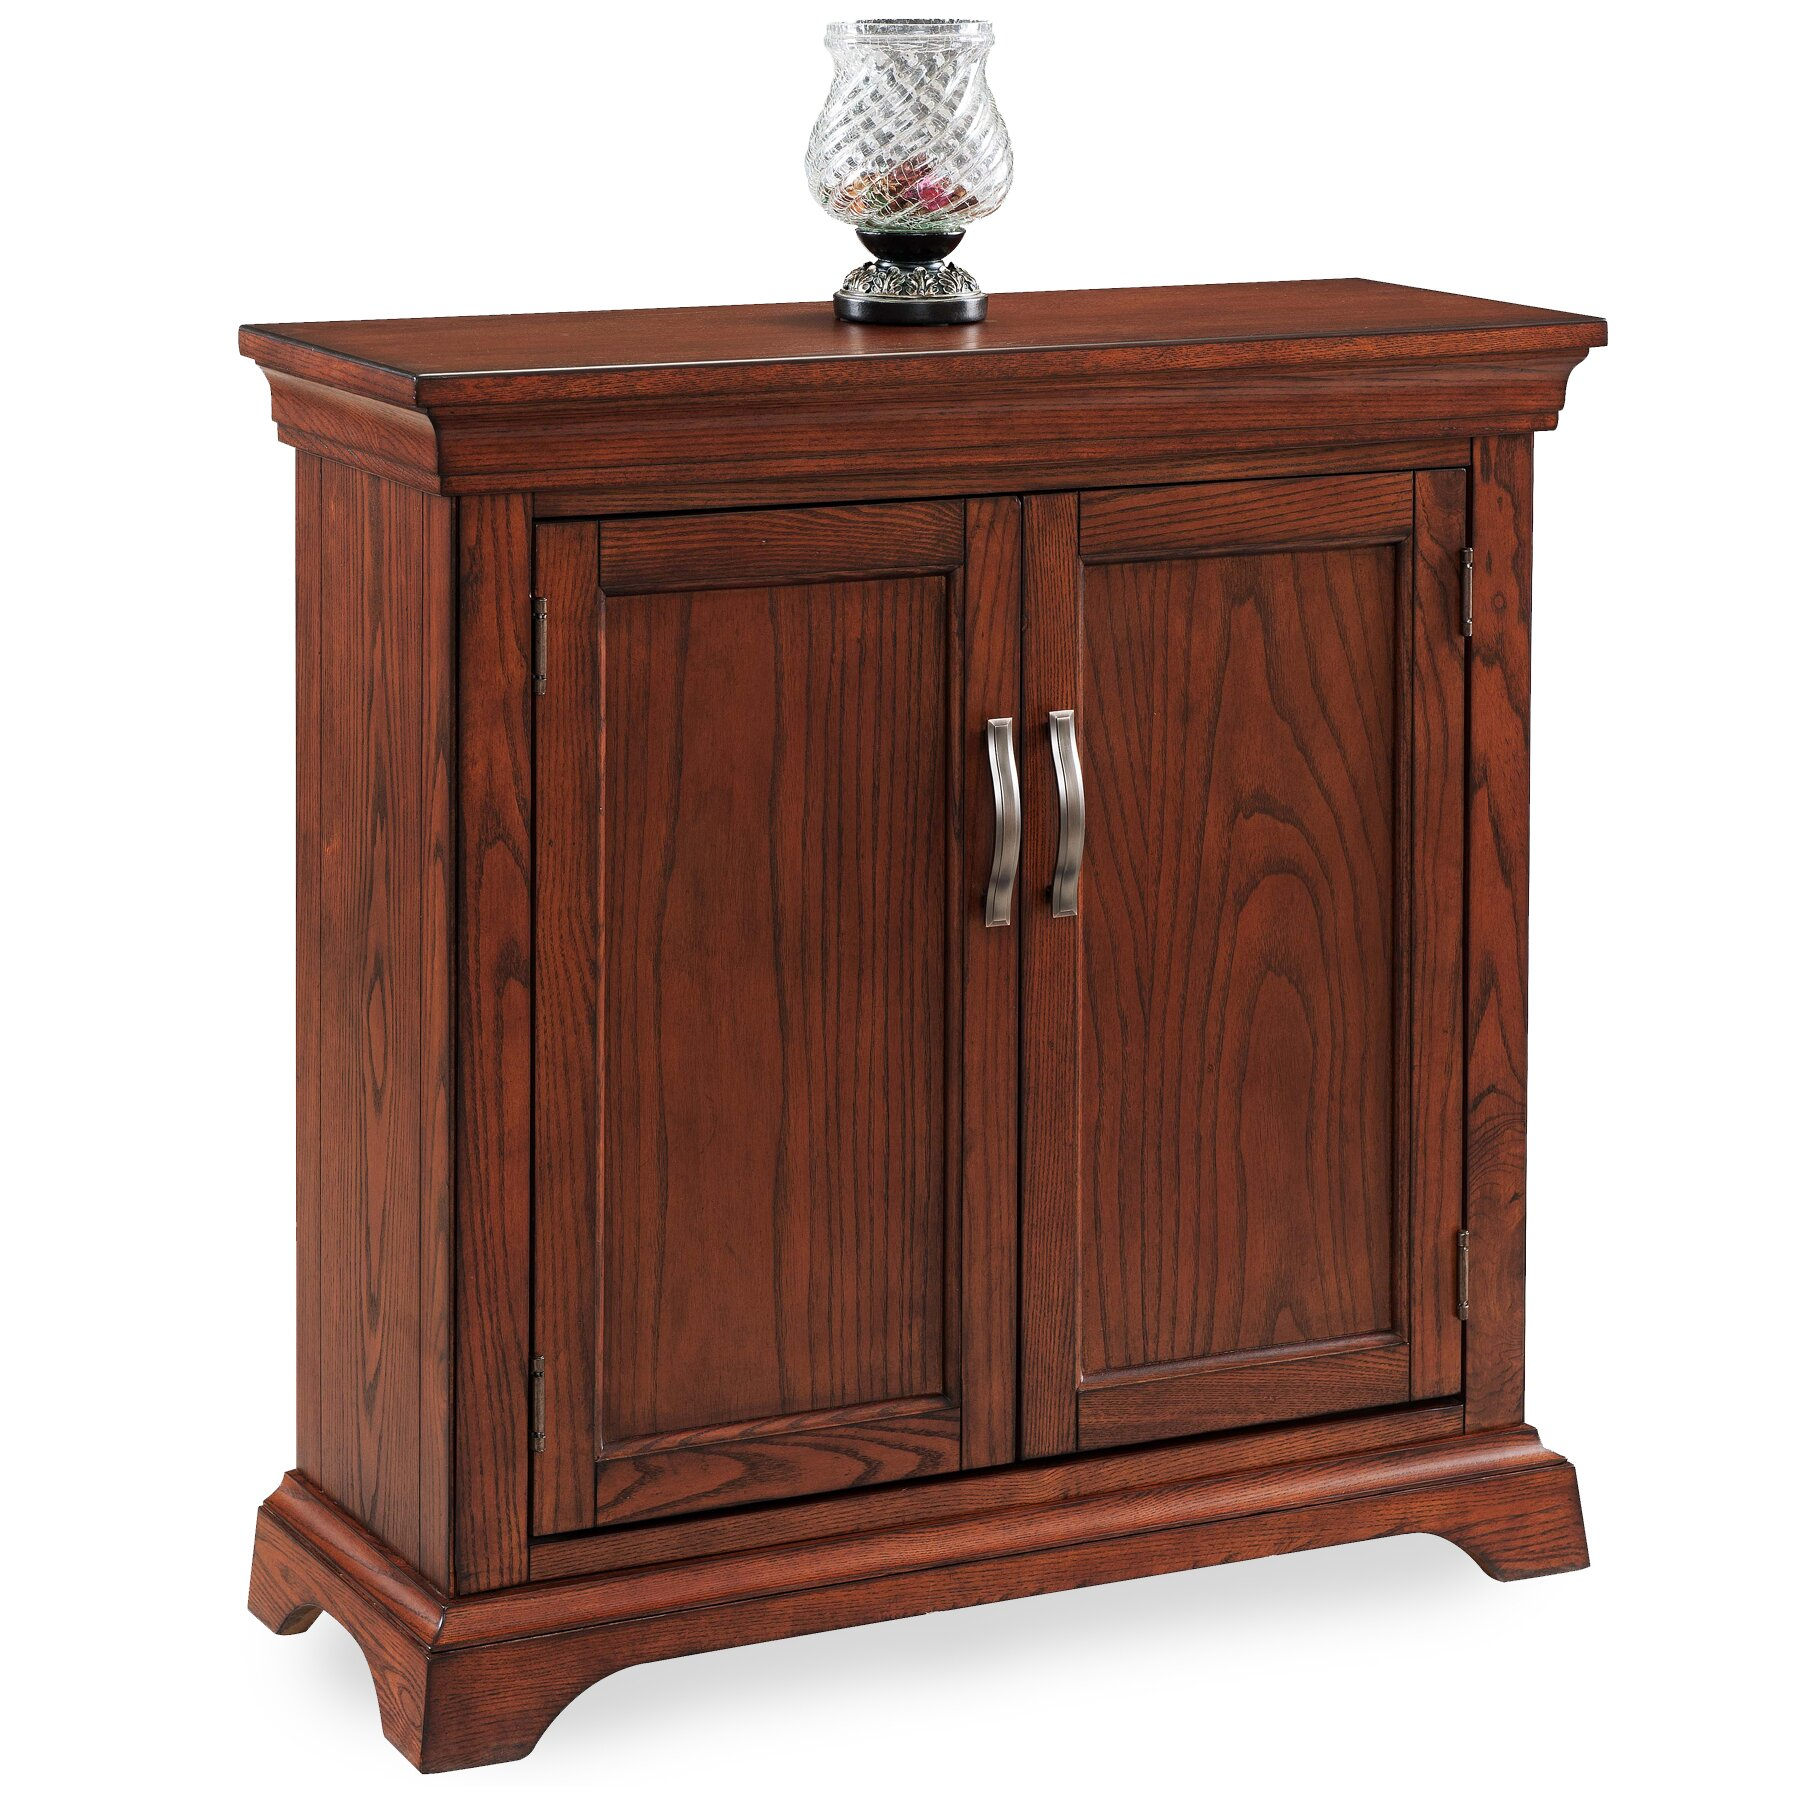 Foyer Cabinets: Charlton Home Apple Valley Traditional Foyer Cabinet/Hall